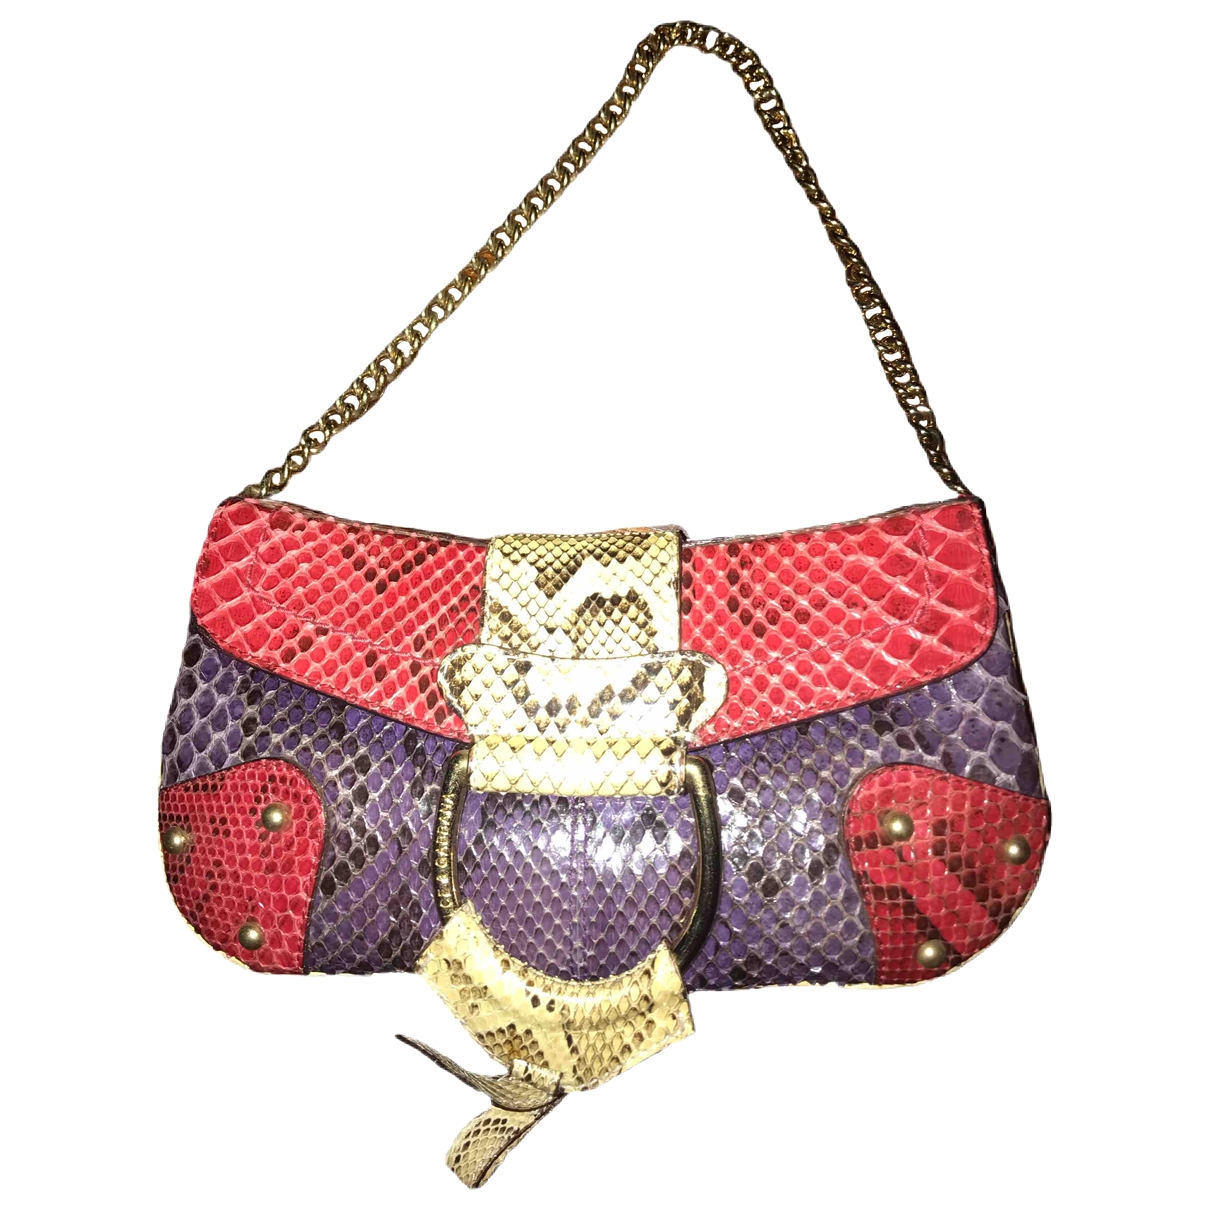 Dolce & Gabbana \N Multicolour Python Clutch bag for Women \N